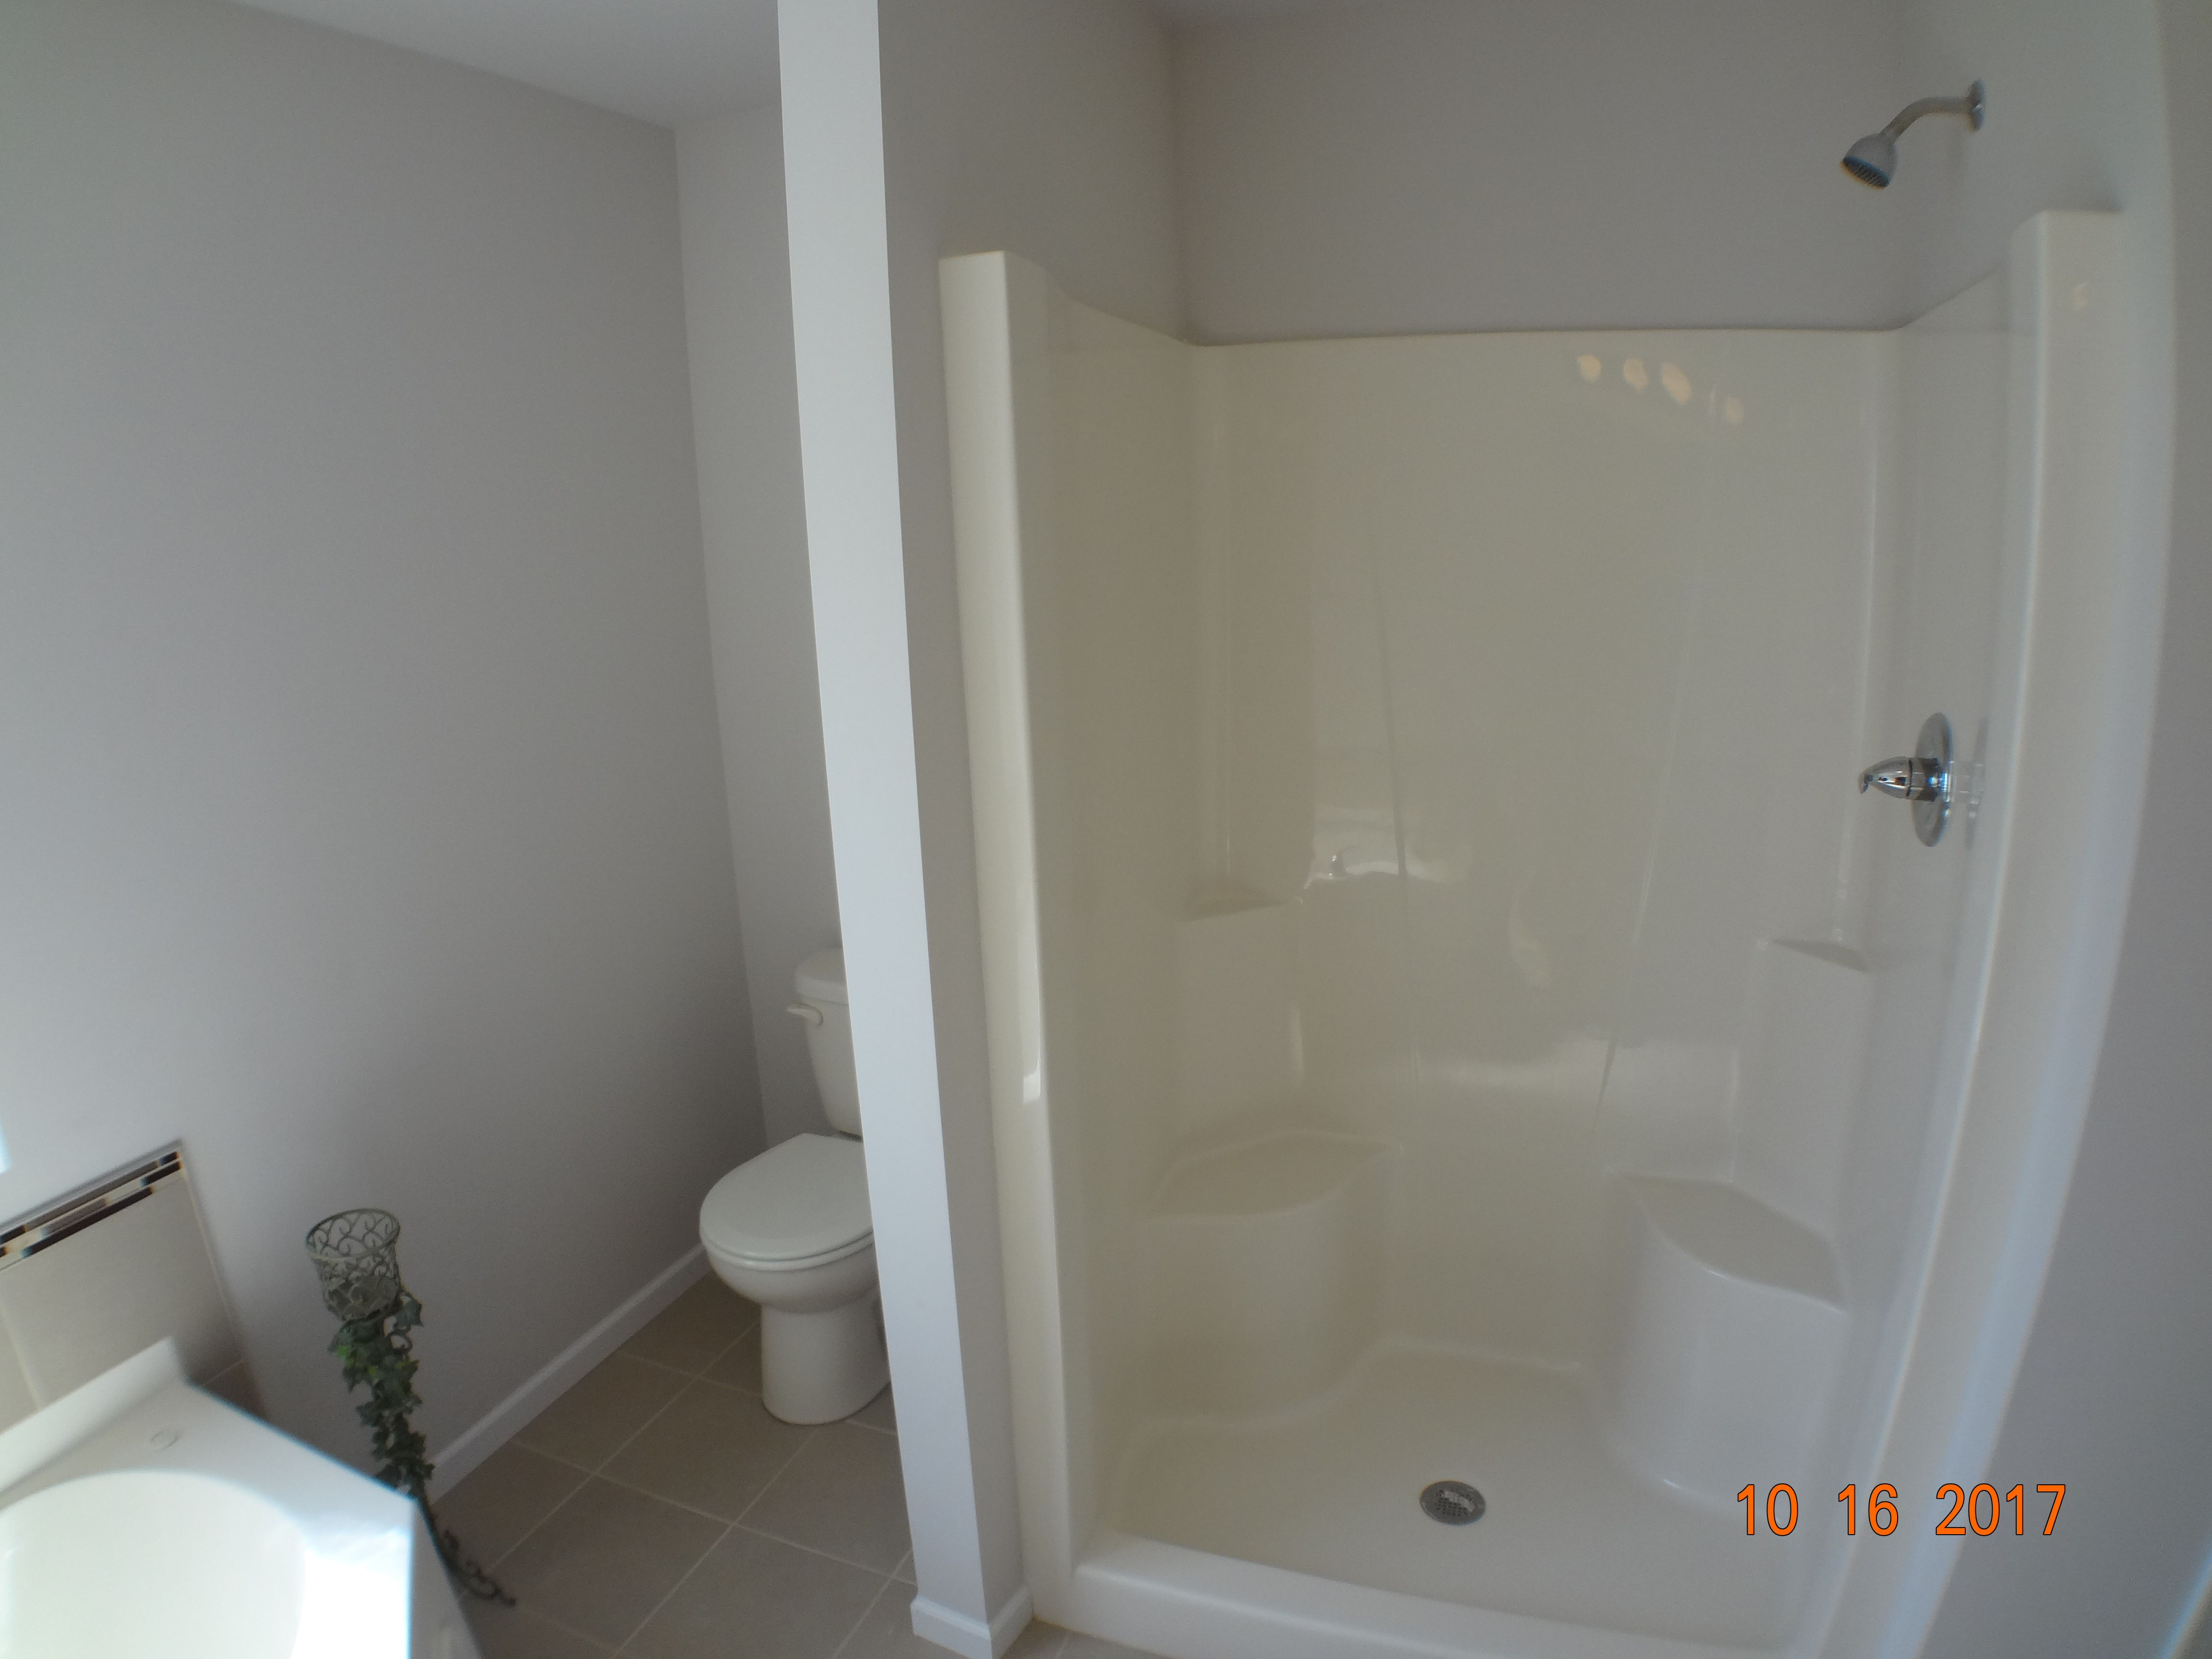 Bathroom featured in the Smithport By Accent Homes Inc. in Gary, IN